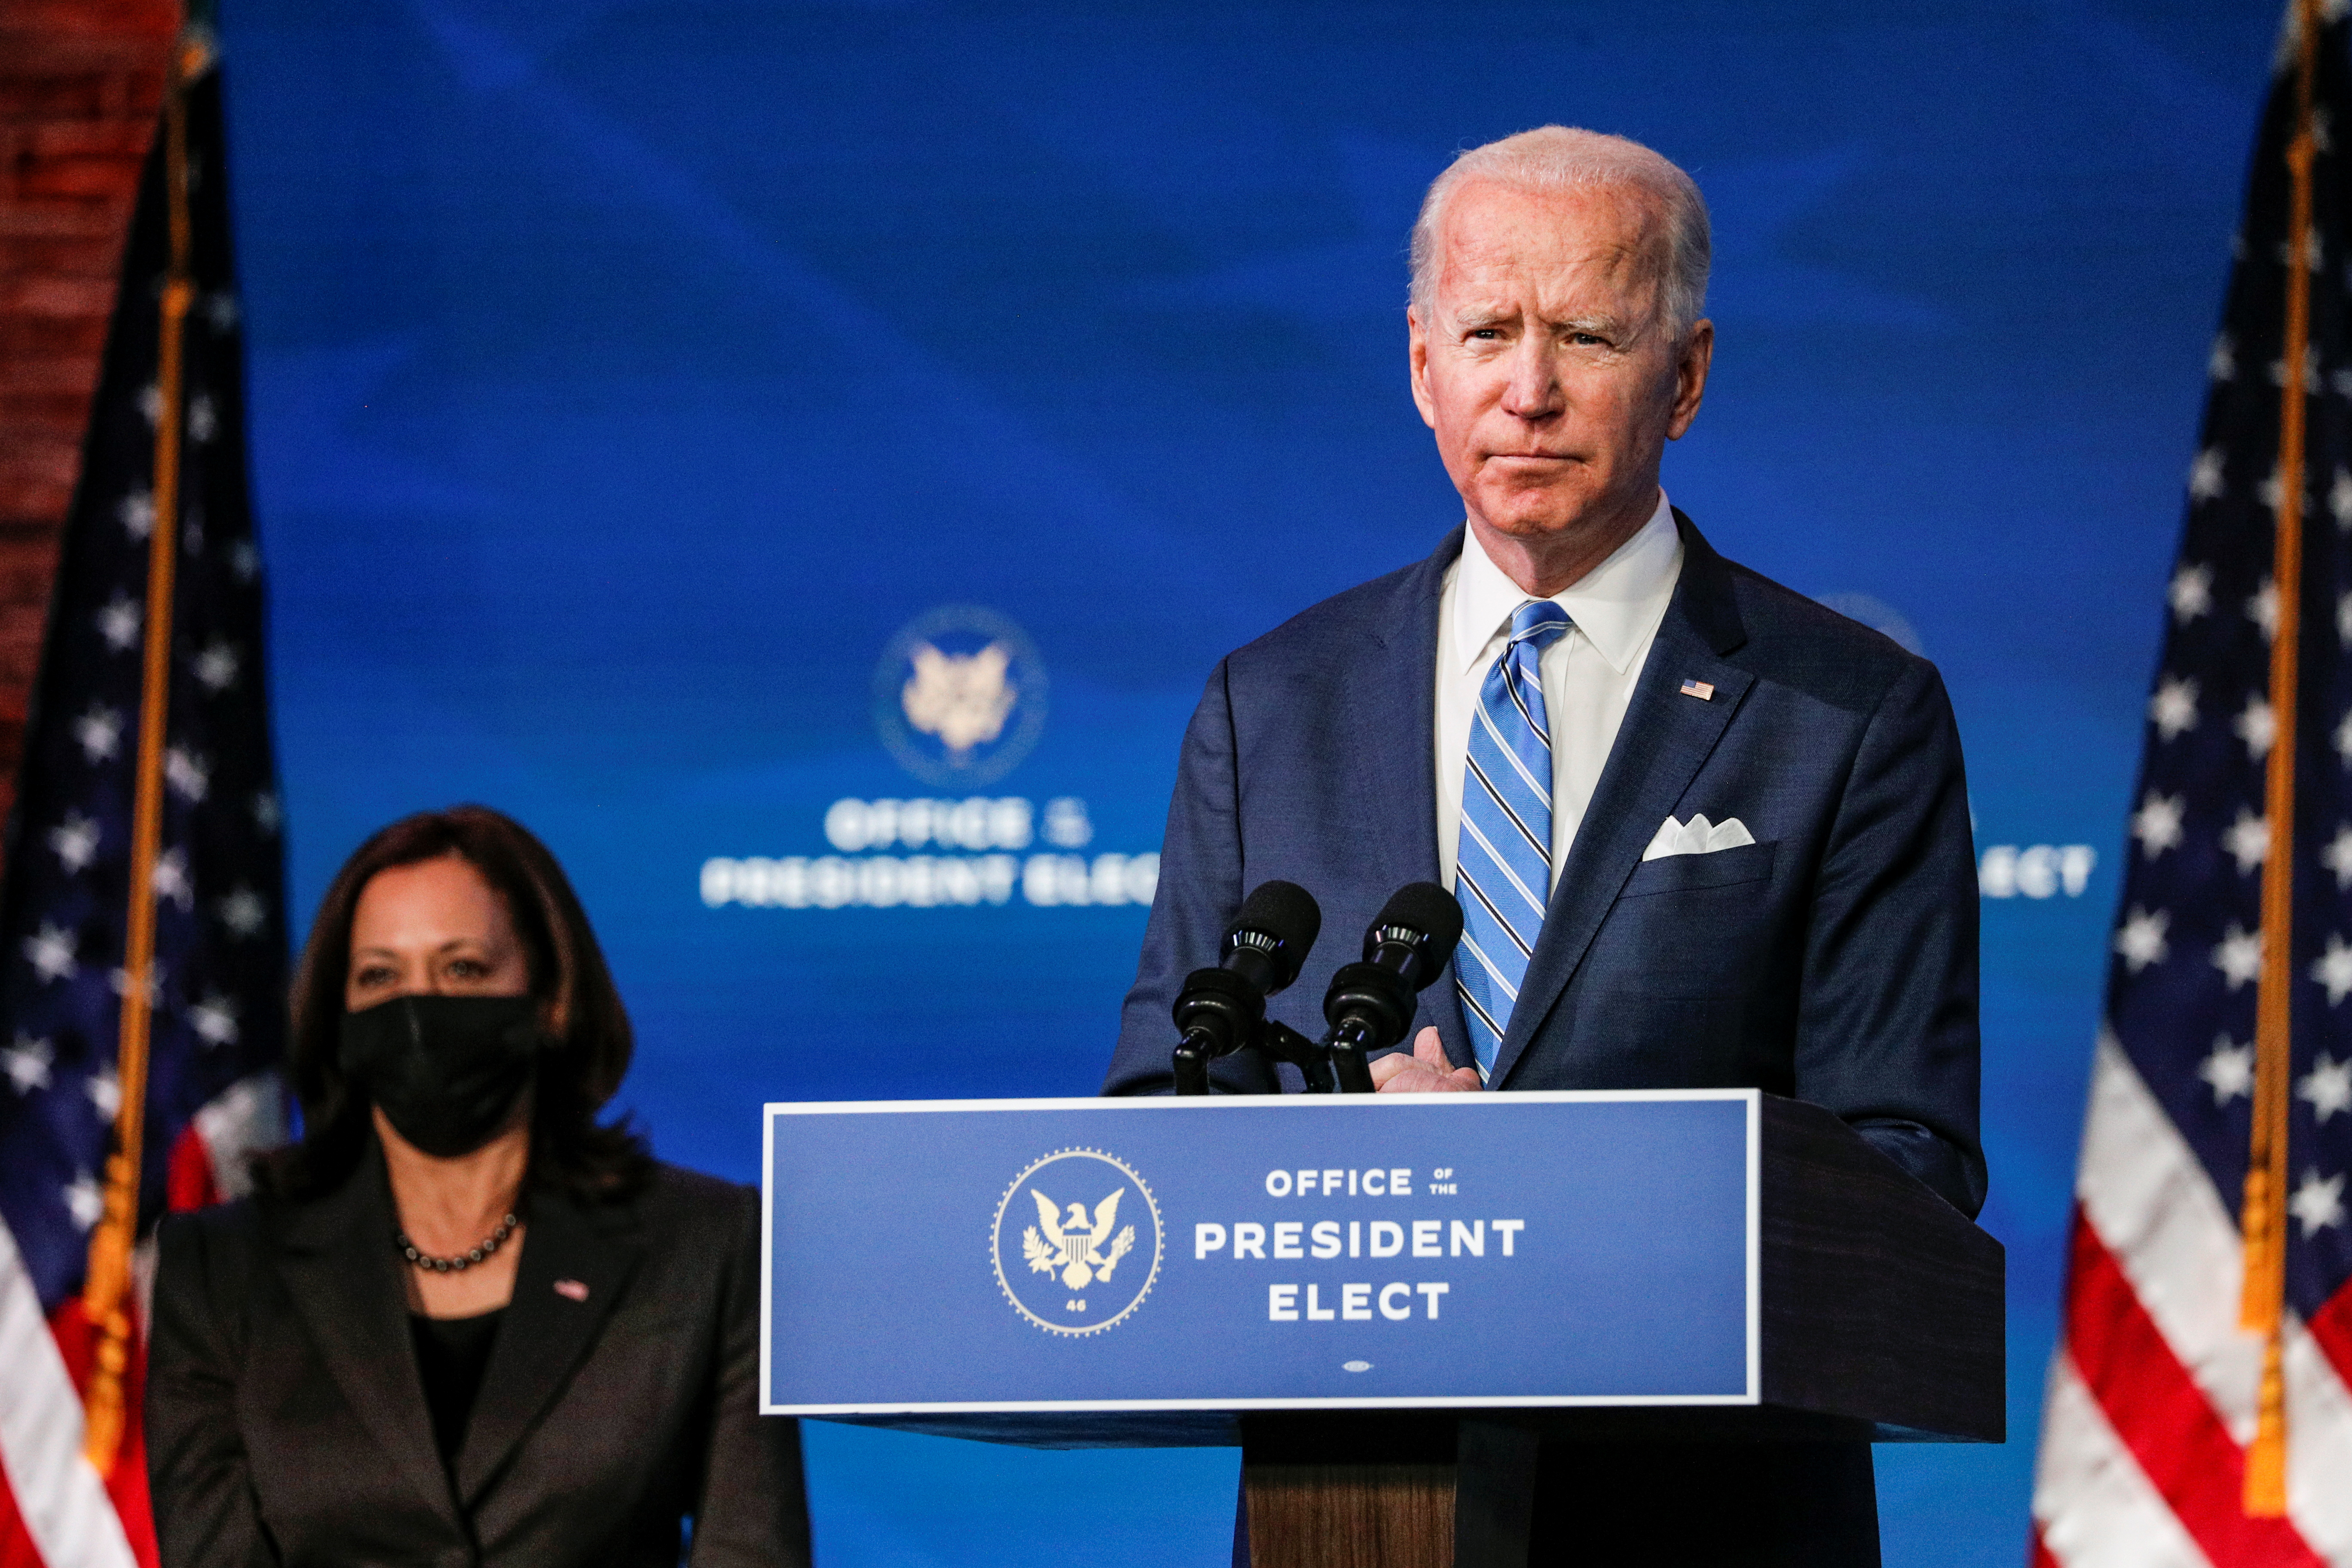 U.S. President-elect Joe Biden delivers remarks as Vice President-elect Kamala Harris looks on during a televised speech on the current economic and health crises at The Queen Theatre in Wilmington, Delaware, U.S., January 14, 2021. REUTERS/Tom Brenner